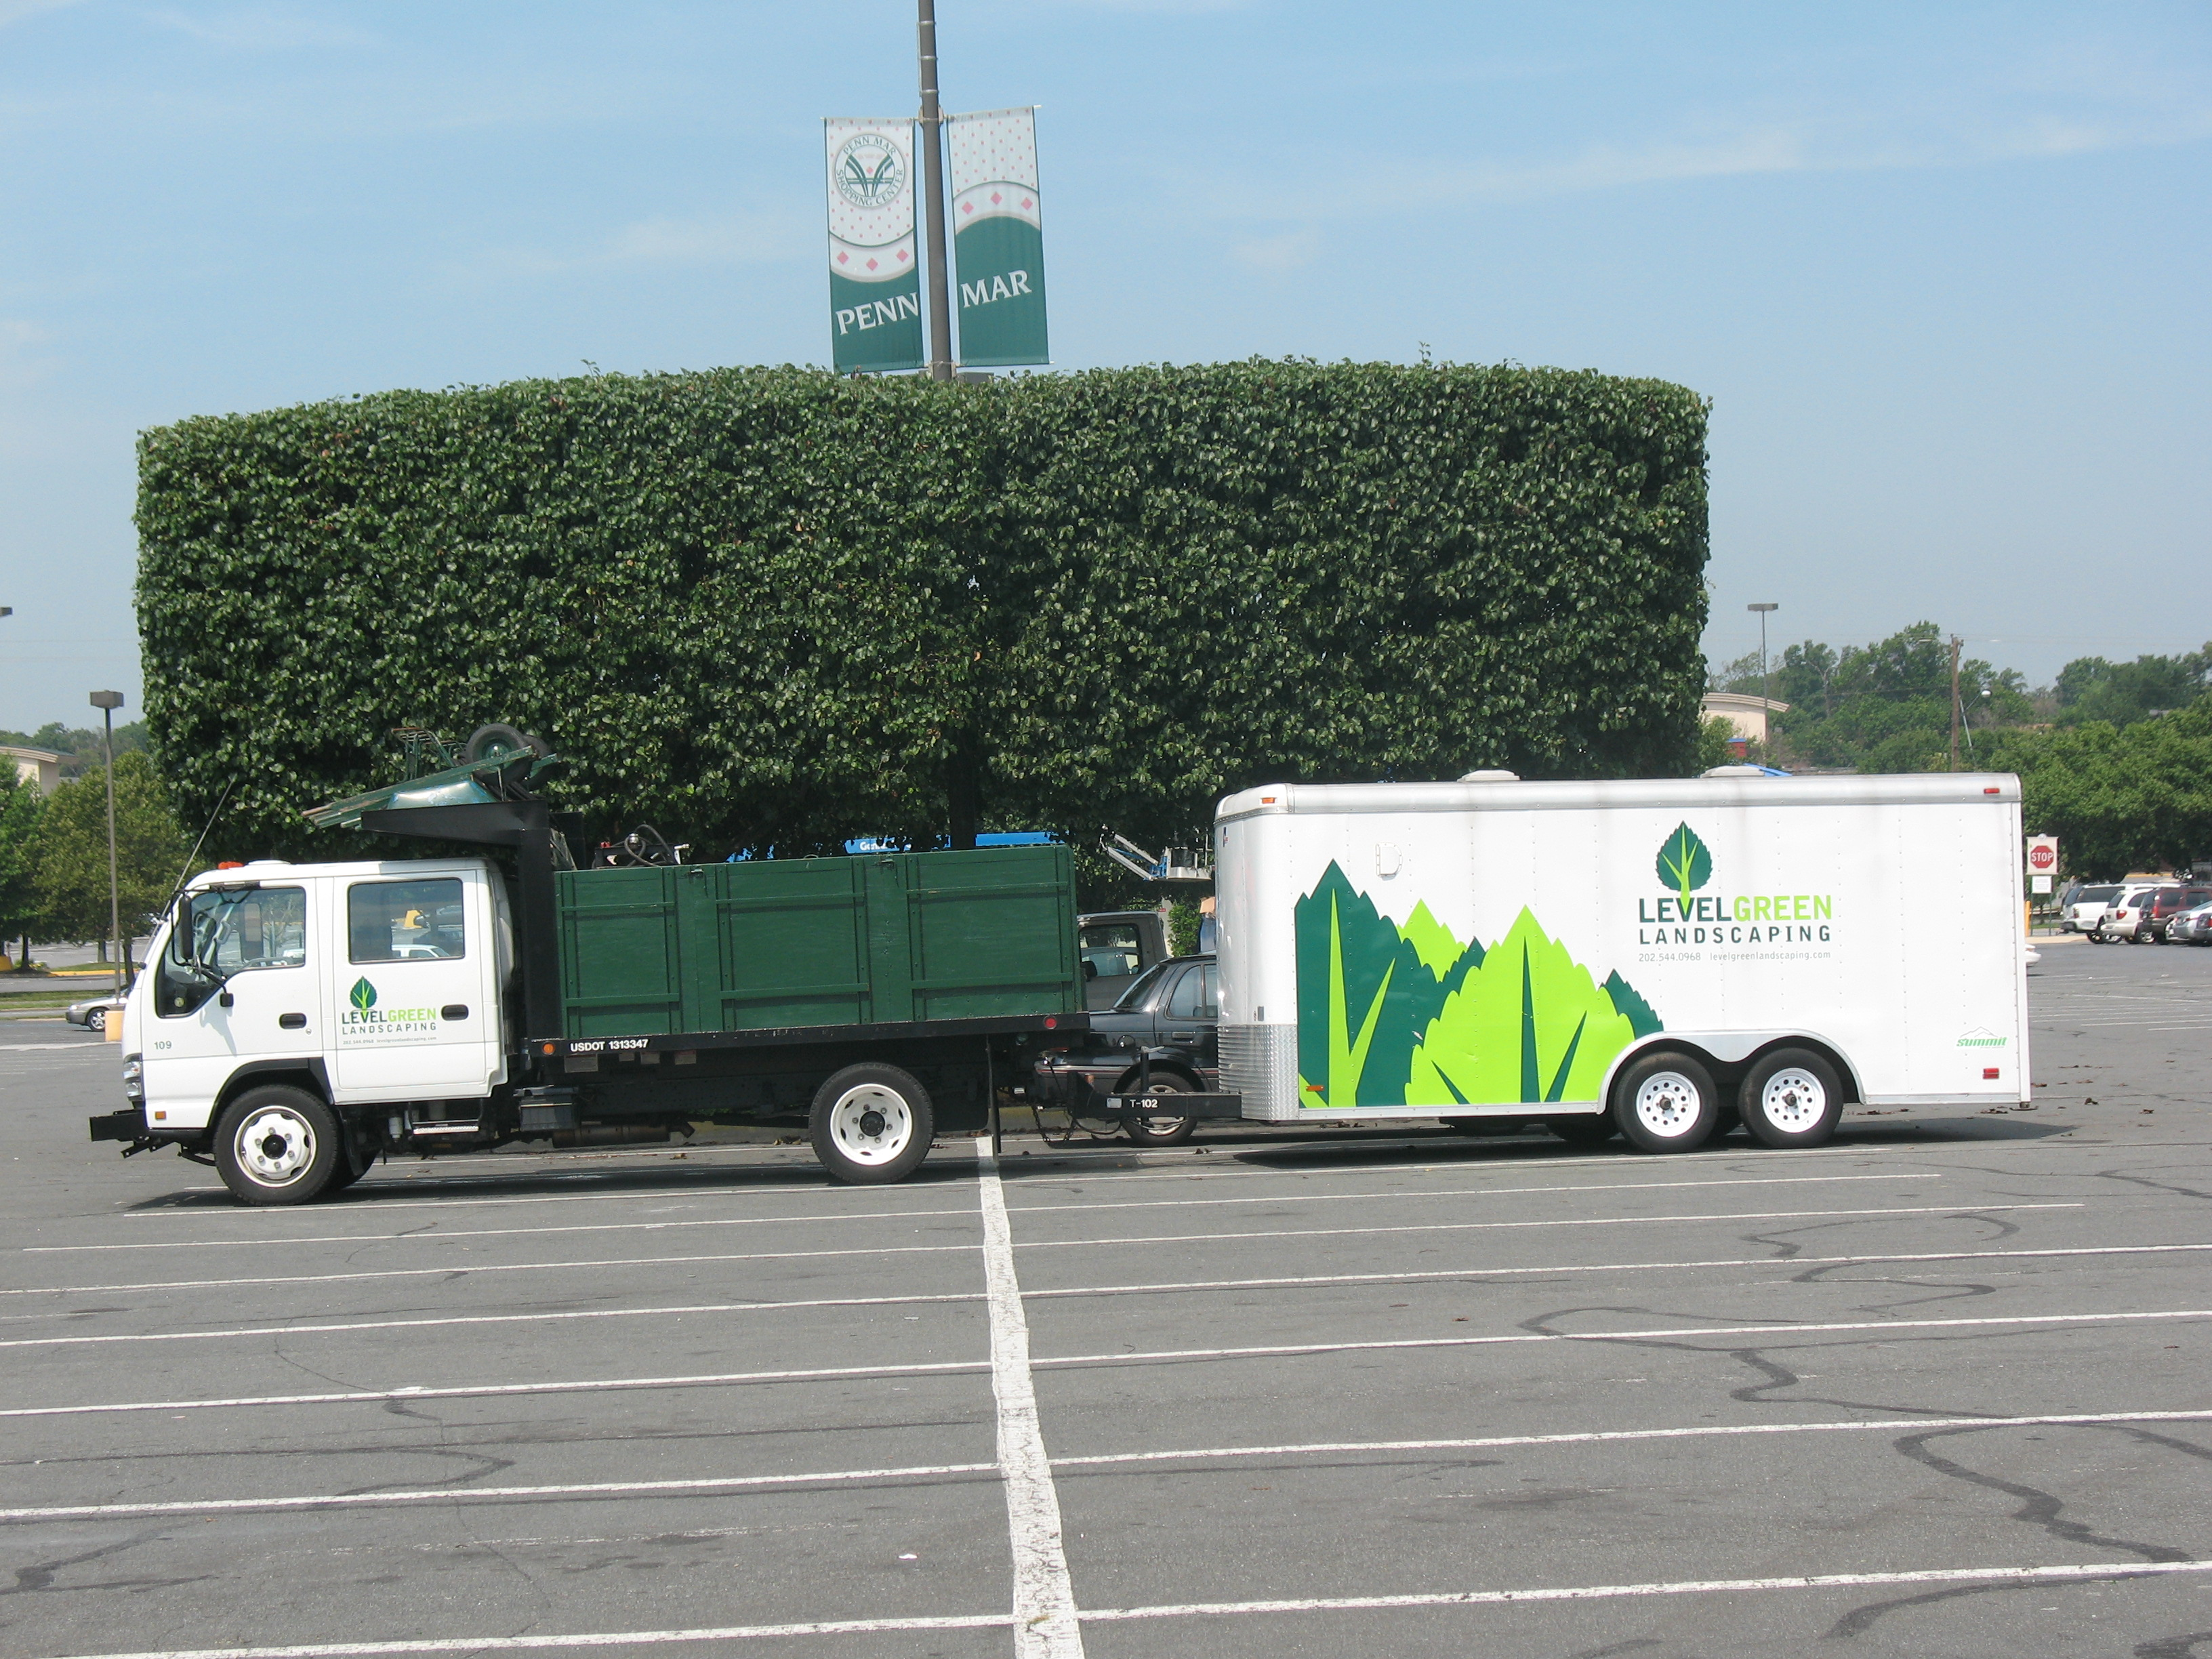 What Exactly Do Environmentally Friendly Landscaping Companies Do Differently?